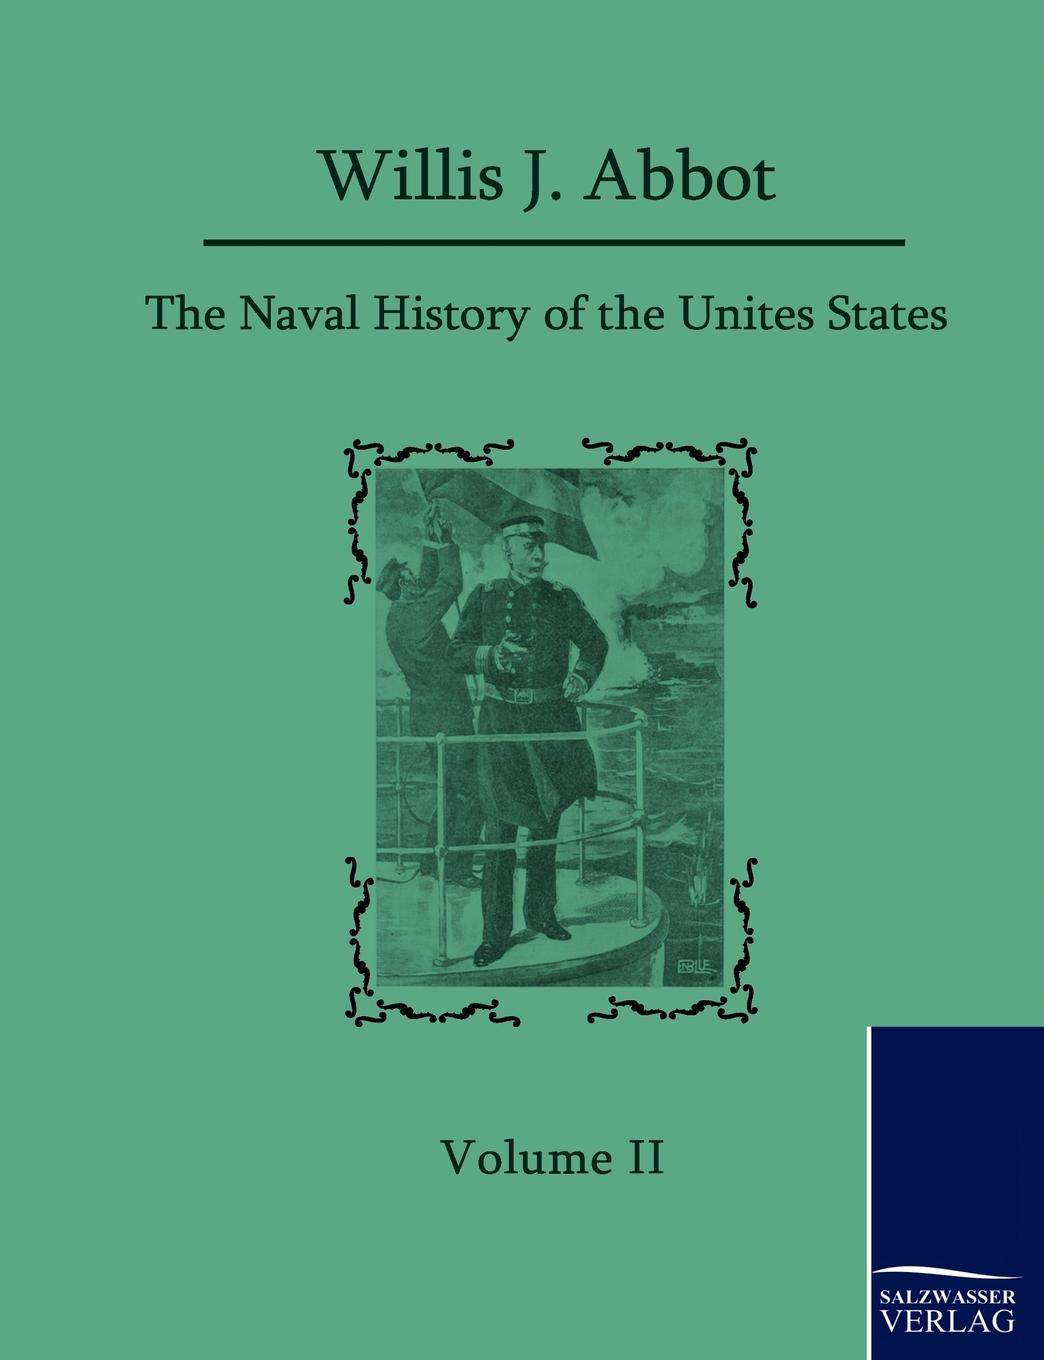 Willis J. Abbot The Naval History of the United States abbot willis john the naval history of the united states volume 2